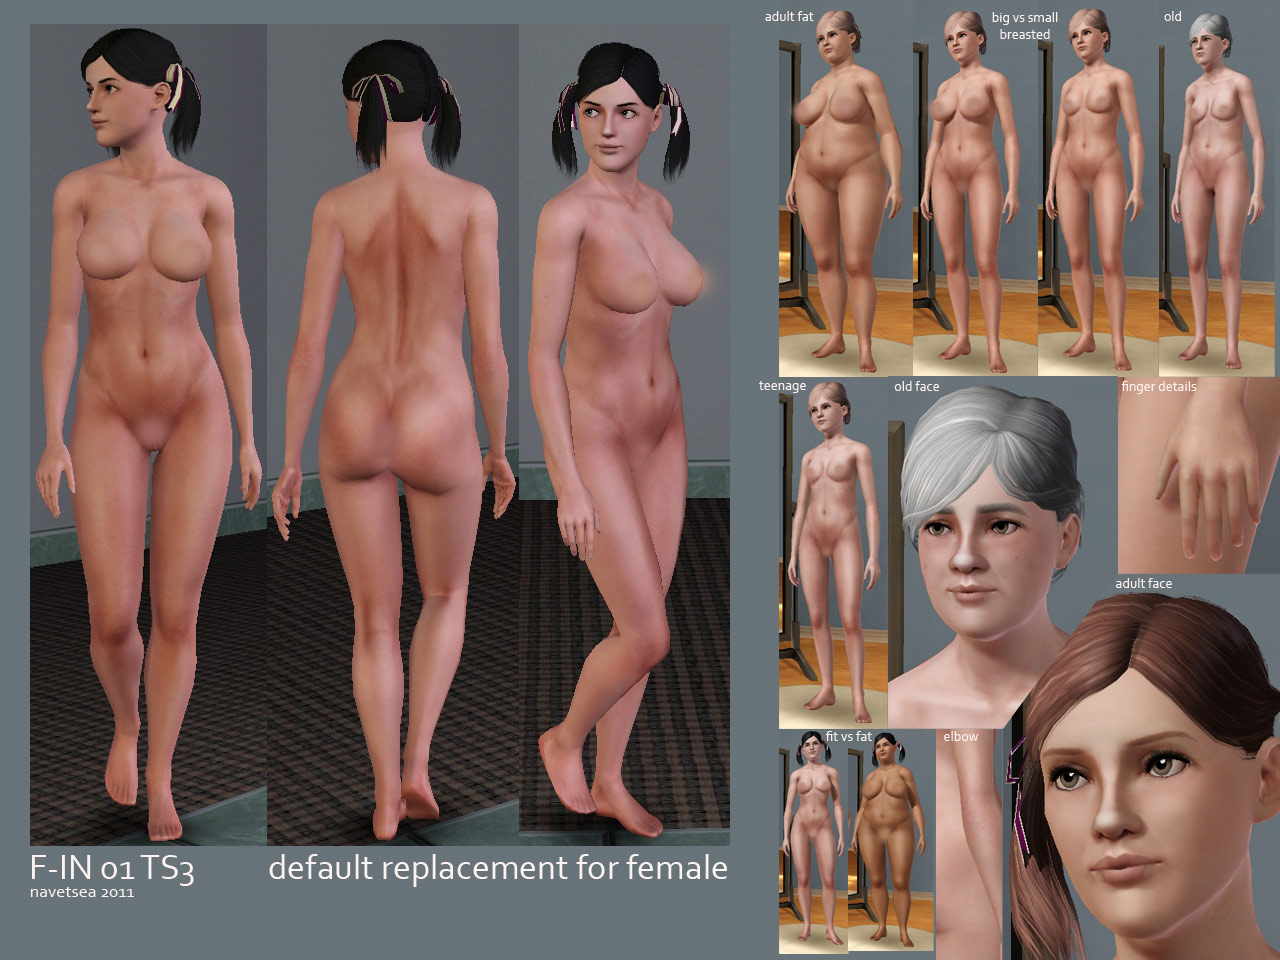 Mod los sims 2 porno exposed photos